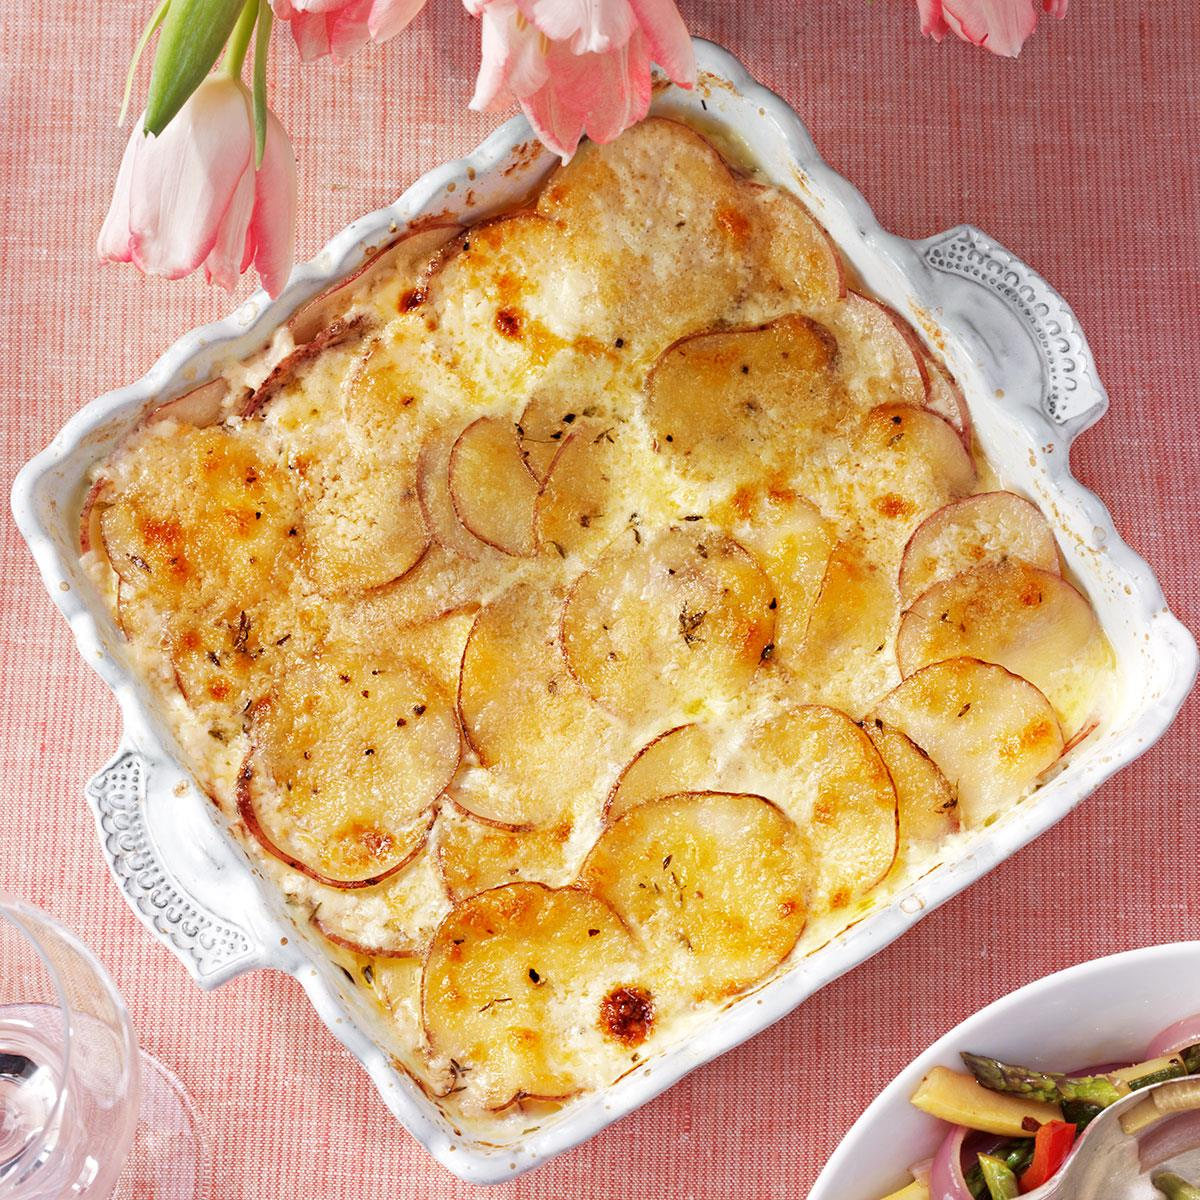 Parmesan Potatoes Au Gratin Recipe How To Make It Taste Of Home